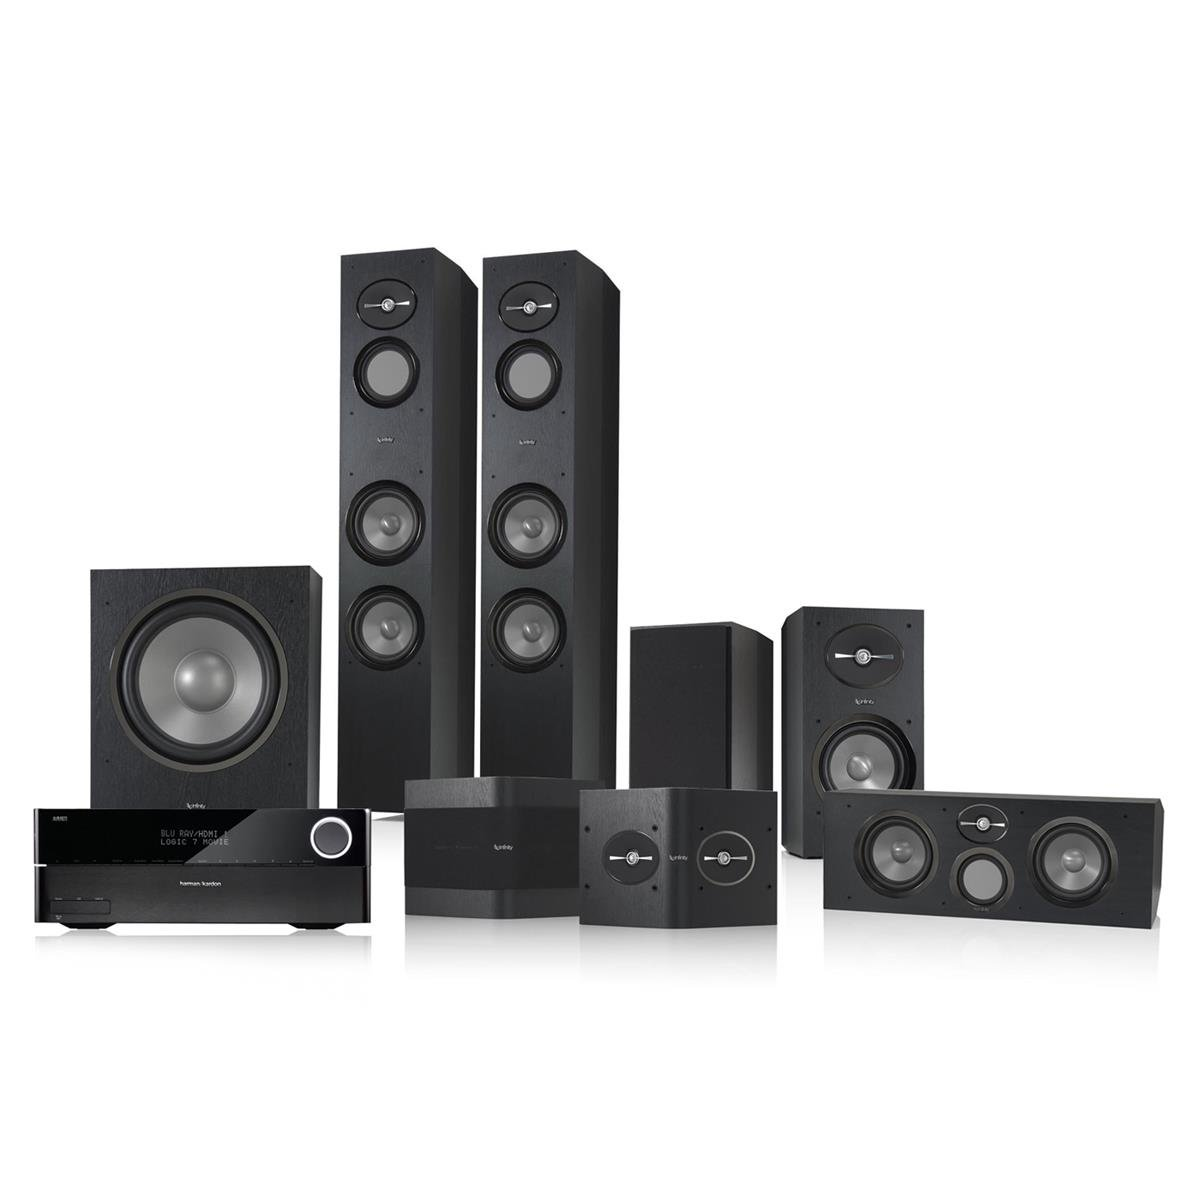 The Best 7.1 Home Theater System 2